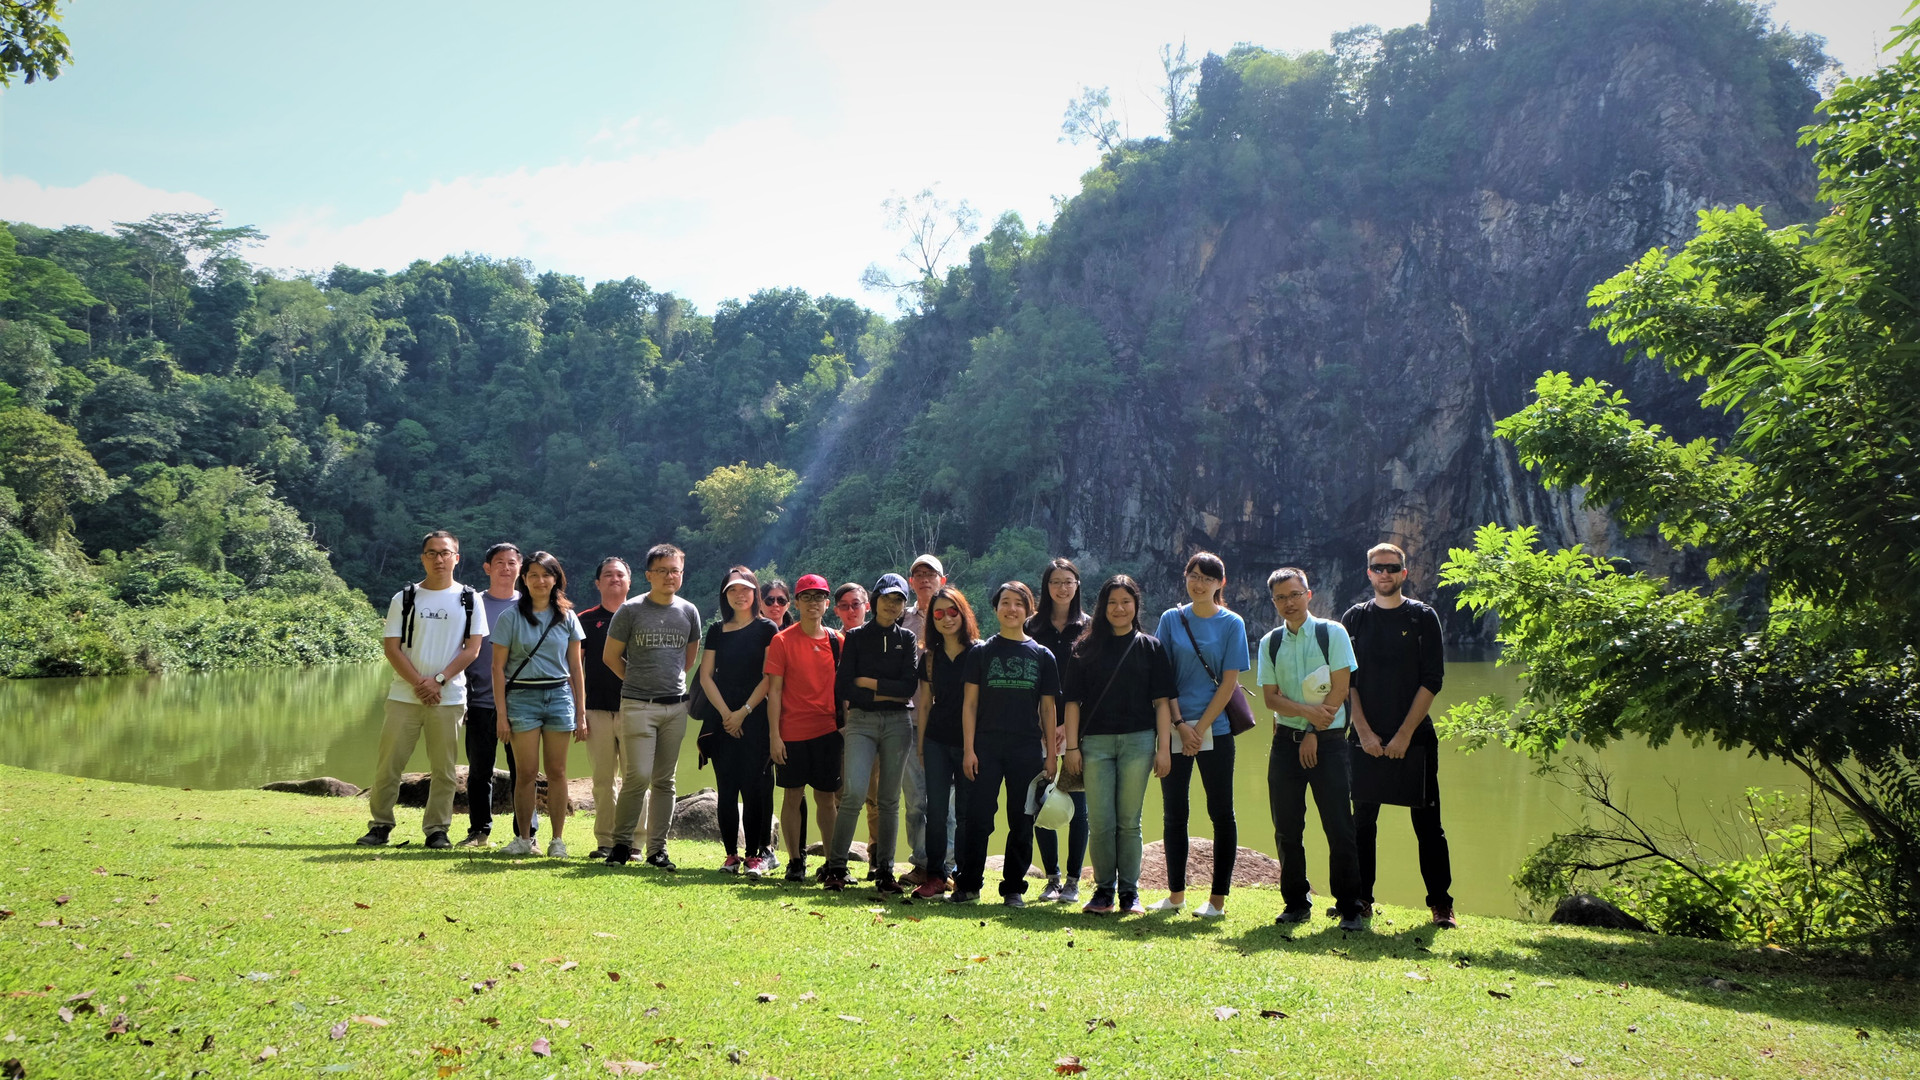 301119 Technical Field Visit to Igneous